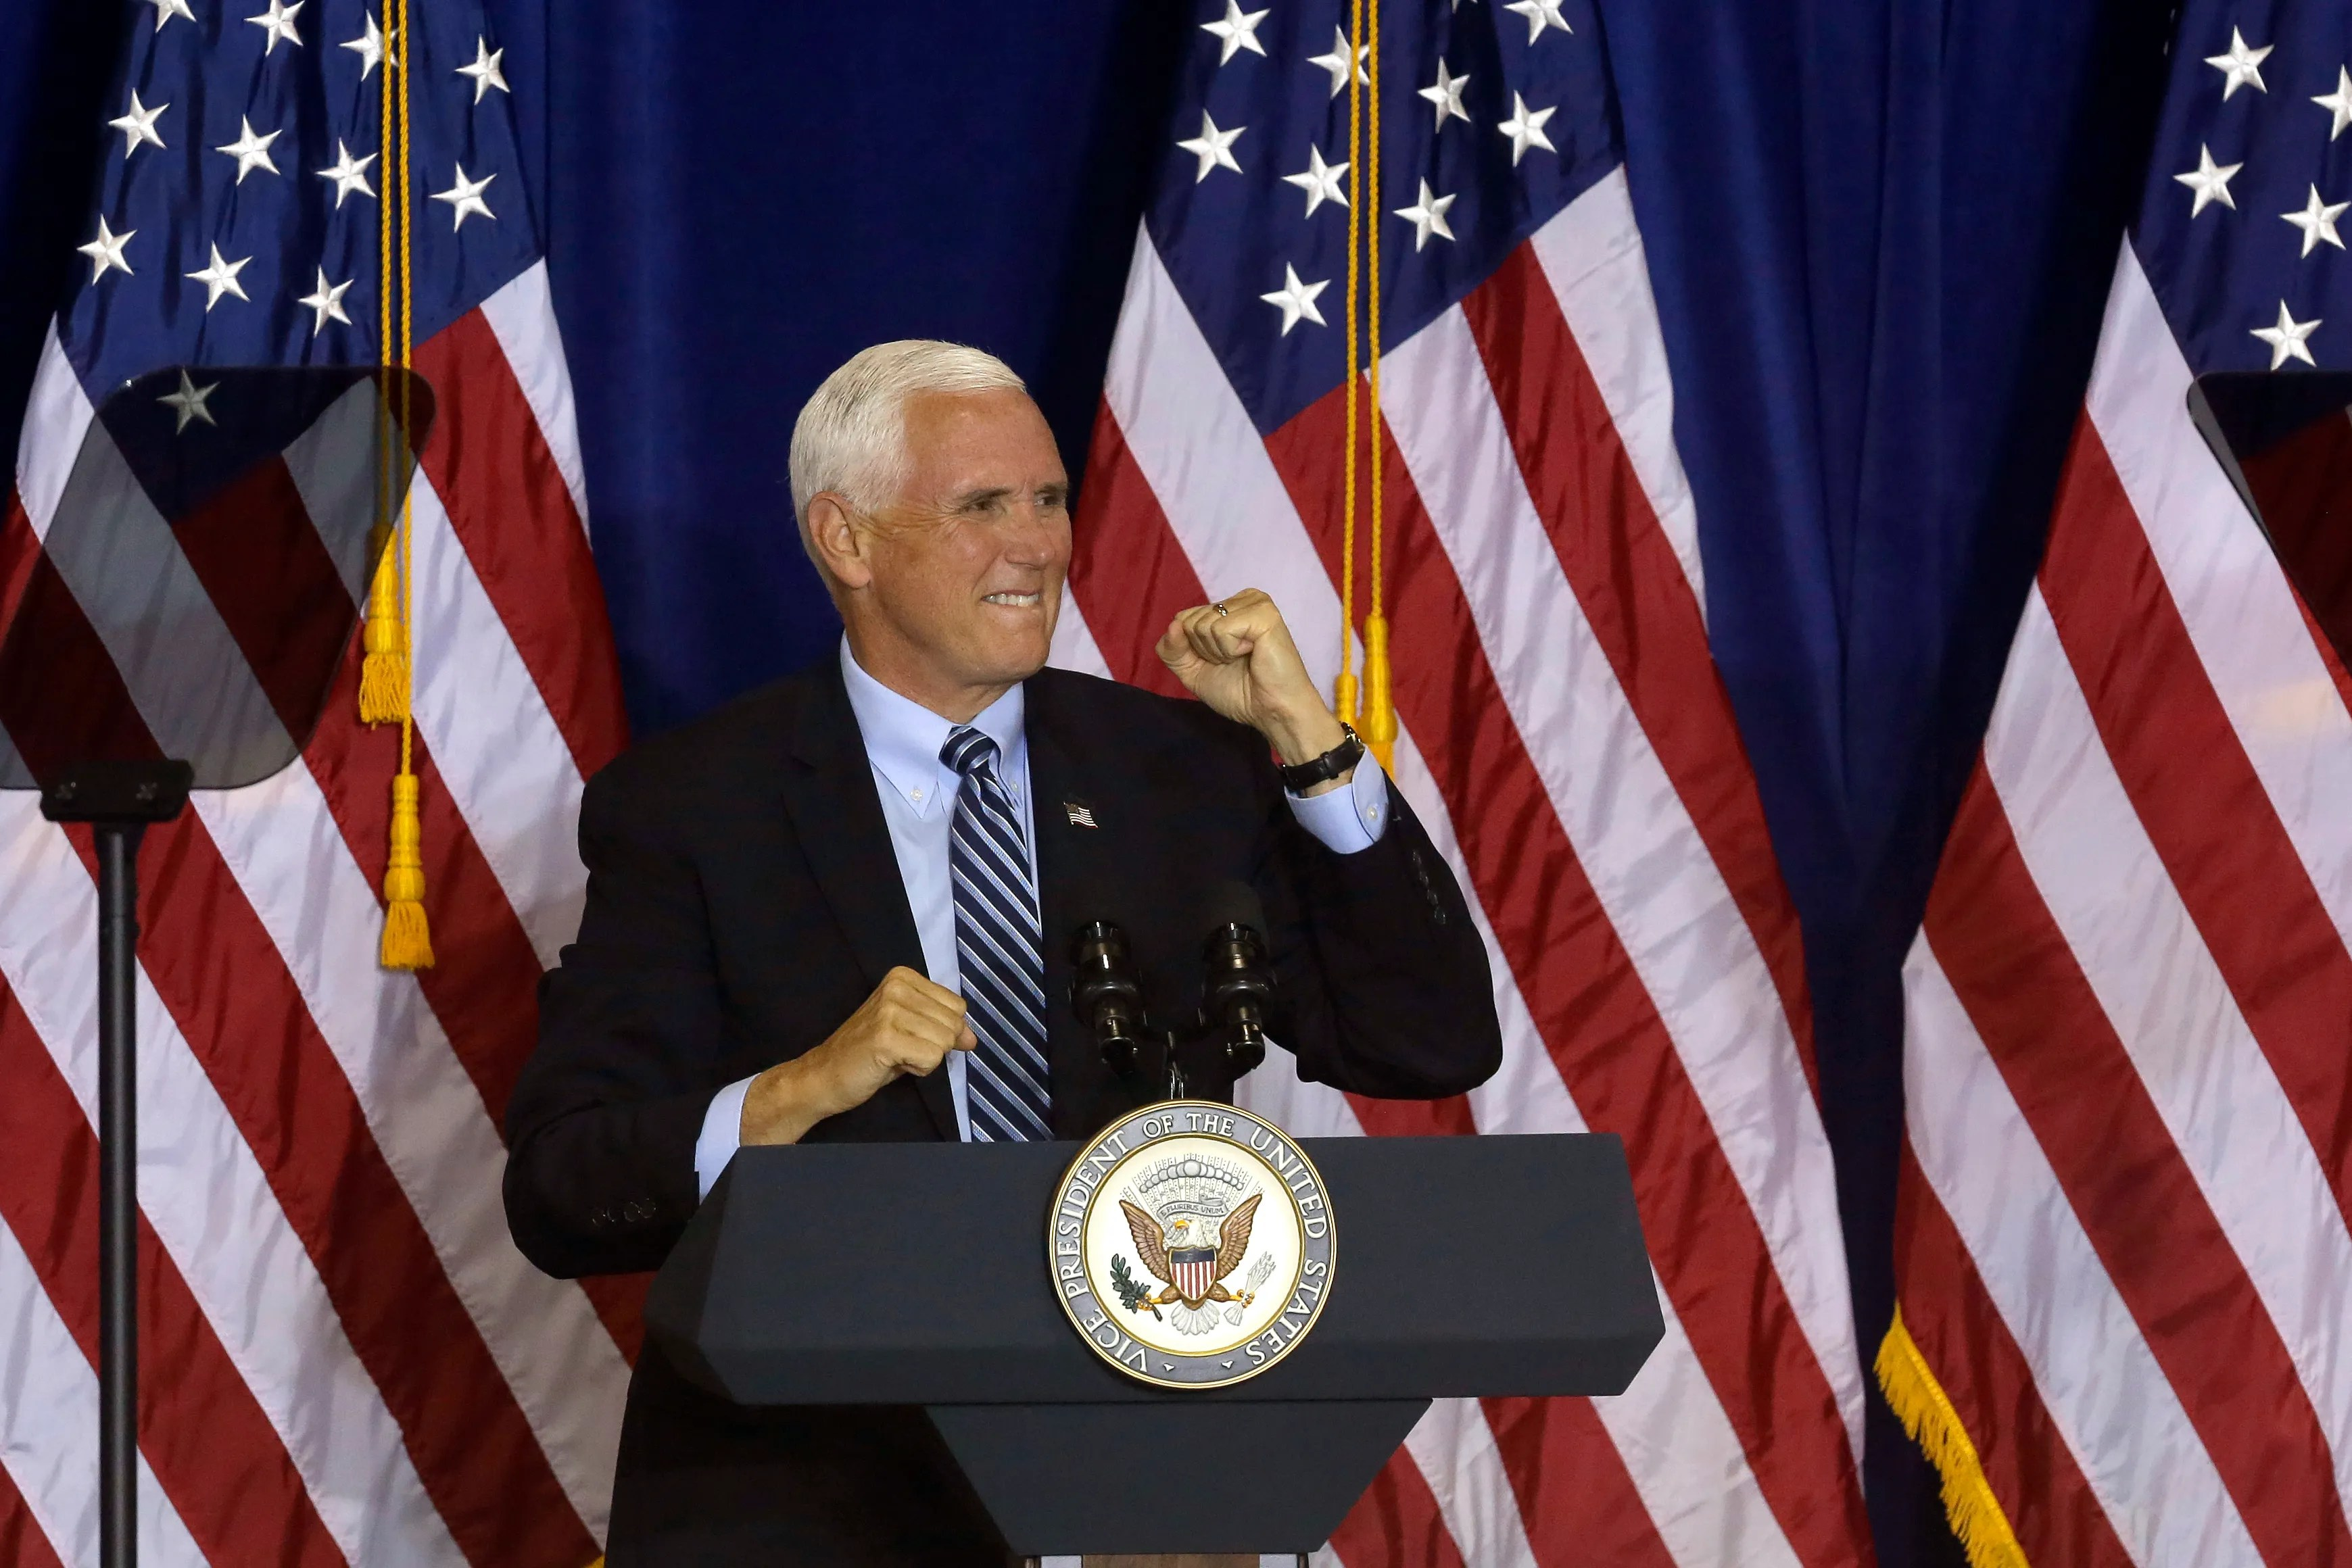 Vice President Mike Pence on October 19, 2020 in New Cumberland, Pennsylvania.